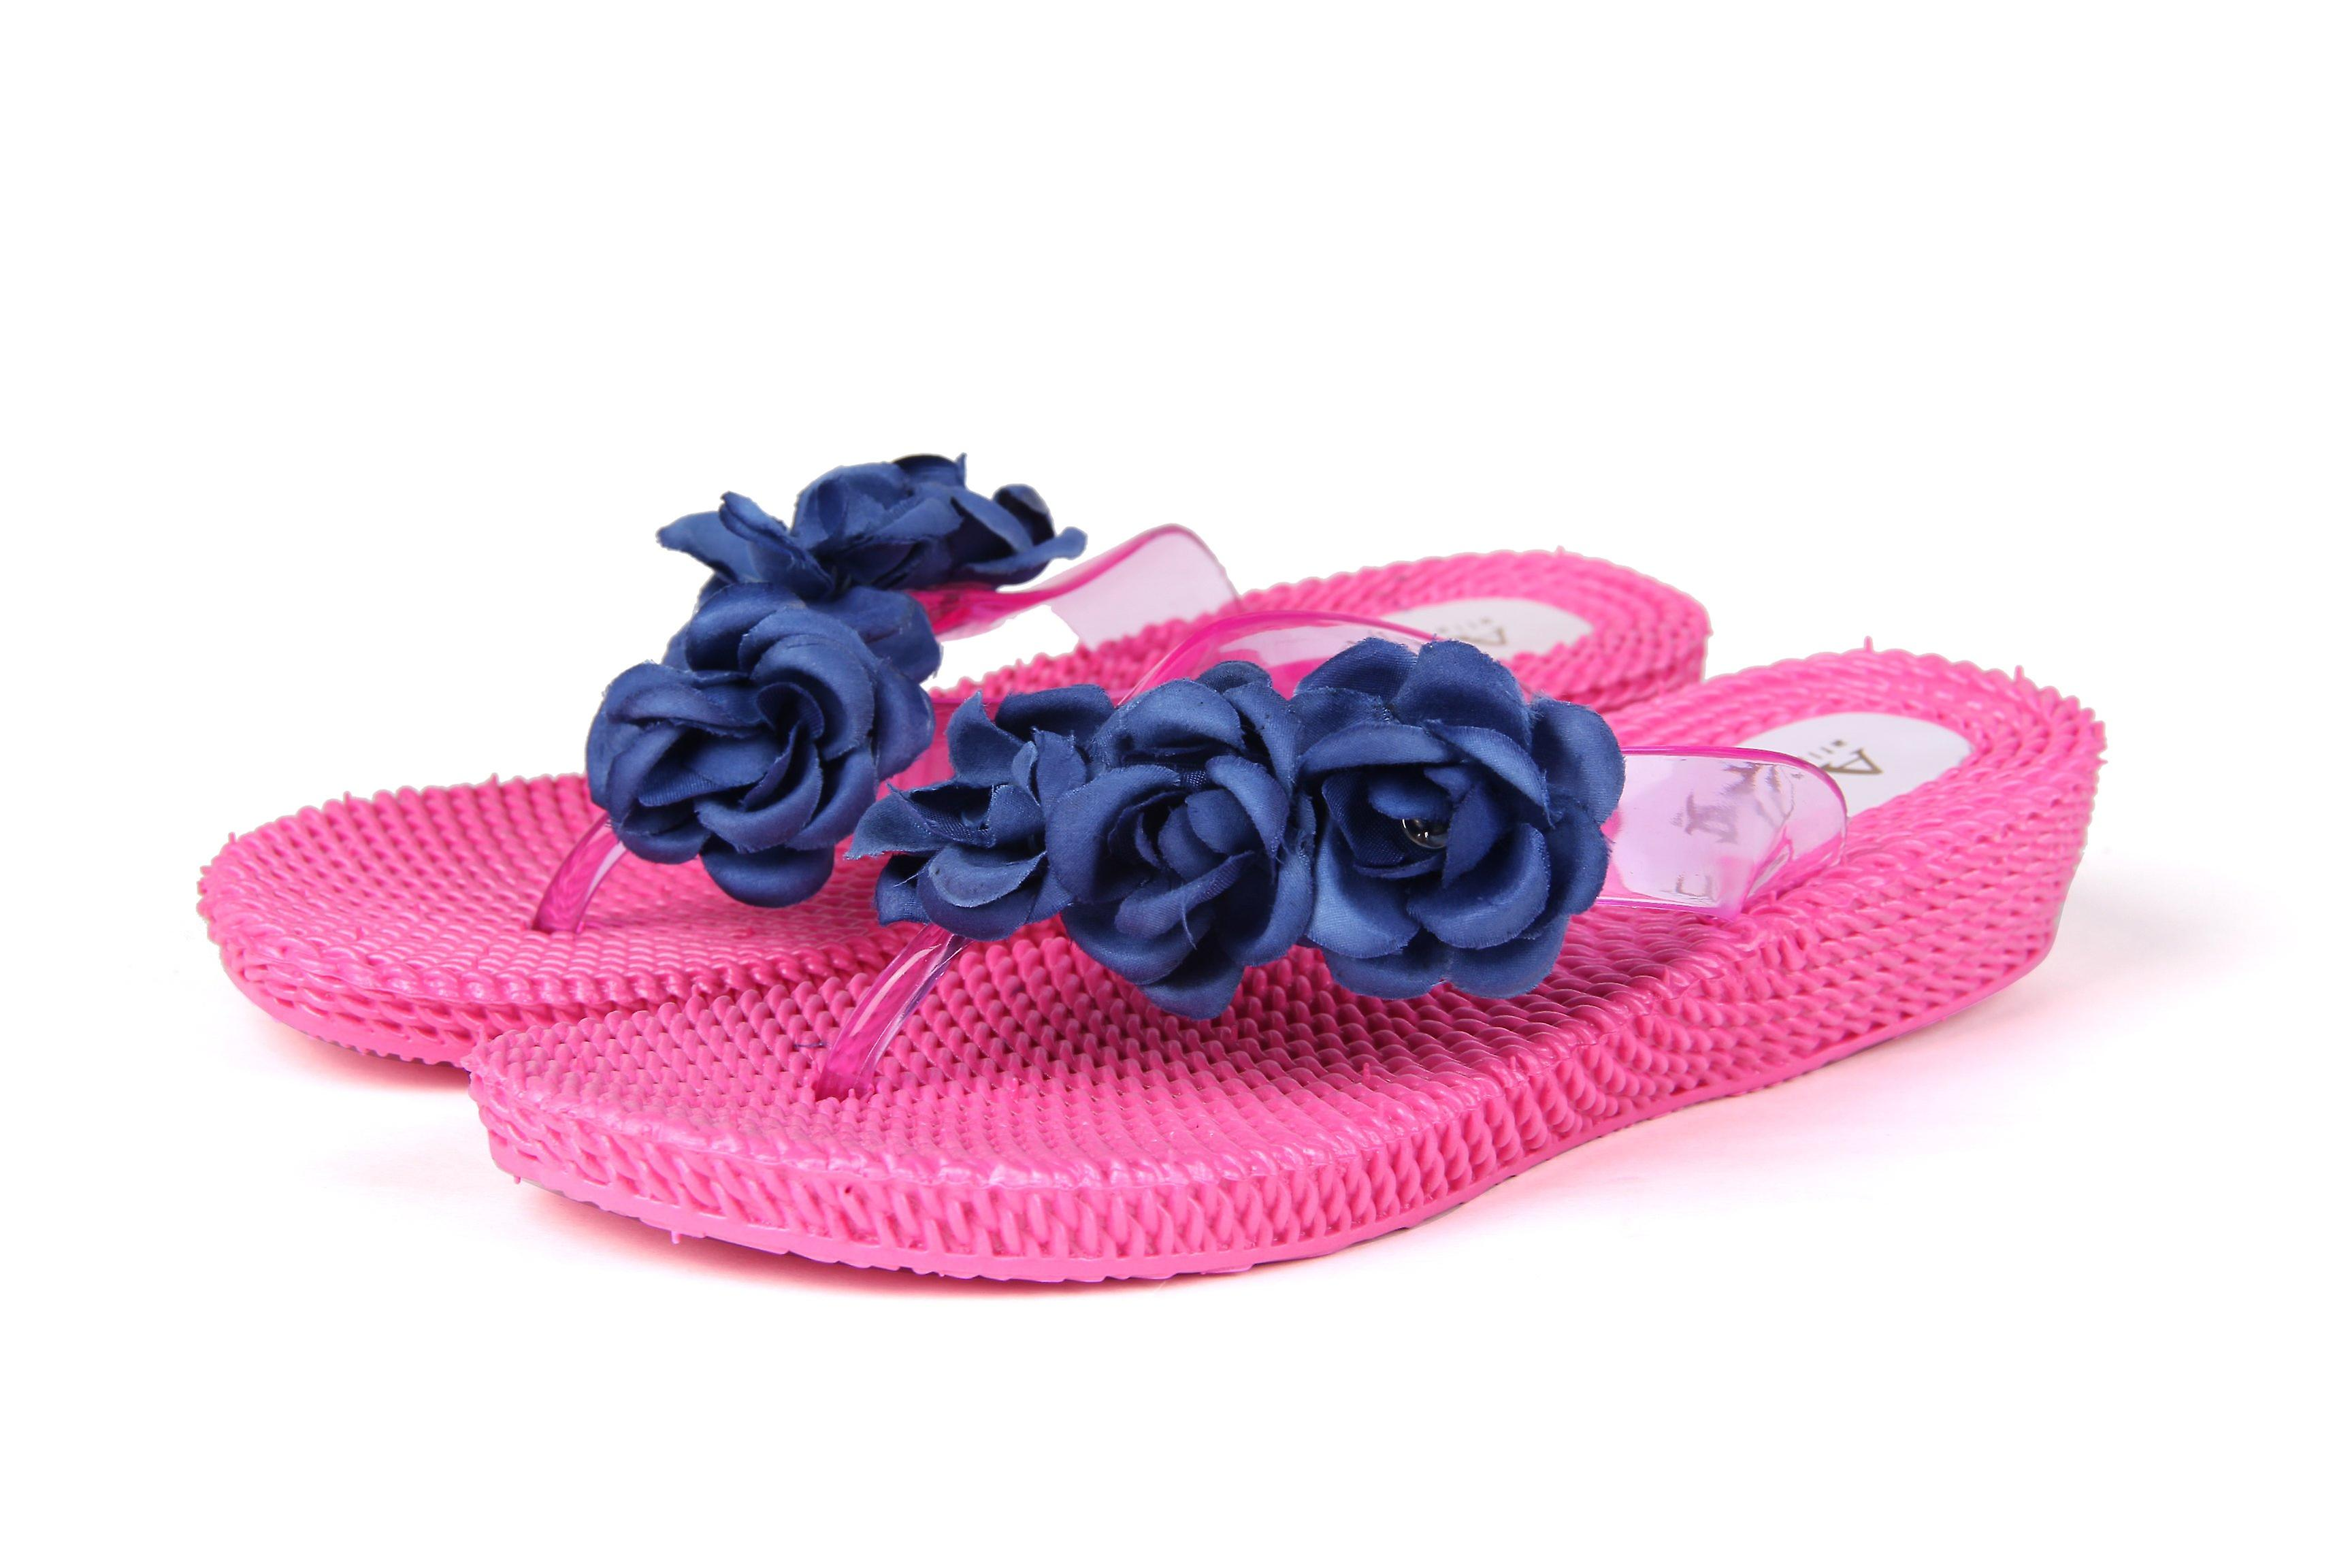 blue Flowers Cushioned Sandals Three Flip Flops Atlantis Shoes Pink Comfortable Supportive Women FwxZ4aPq